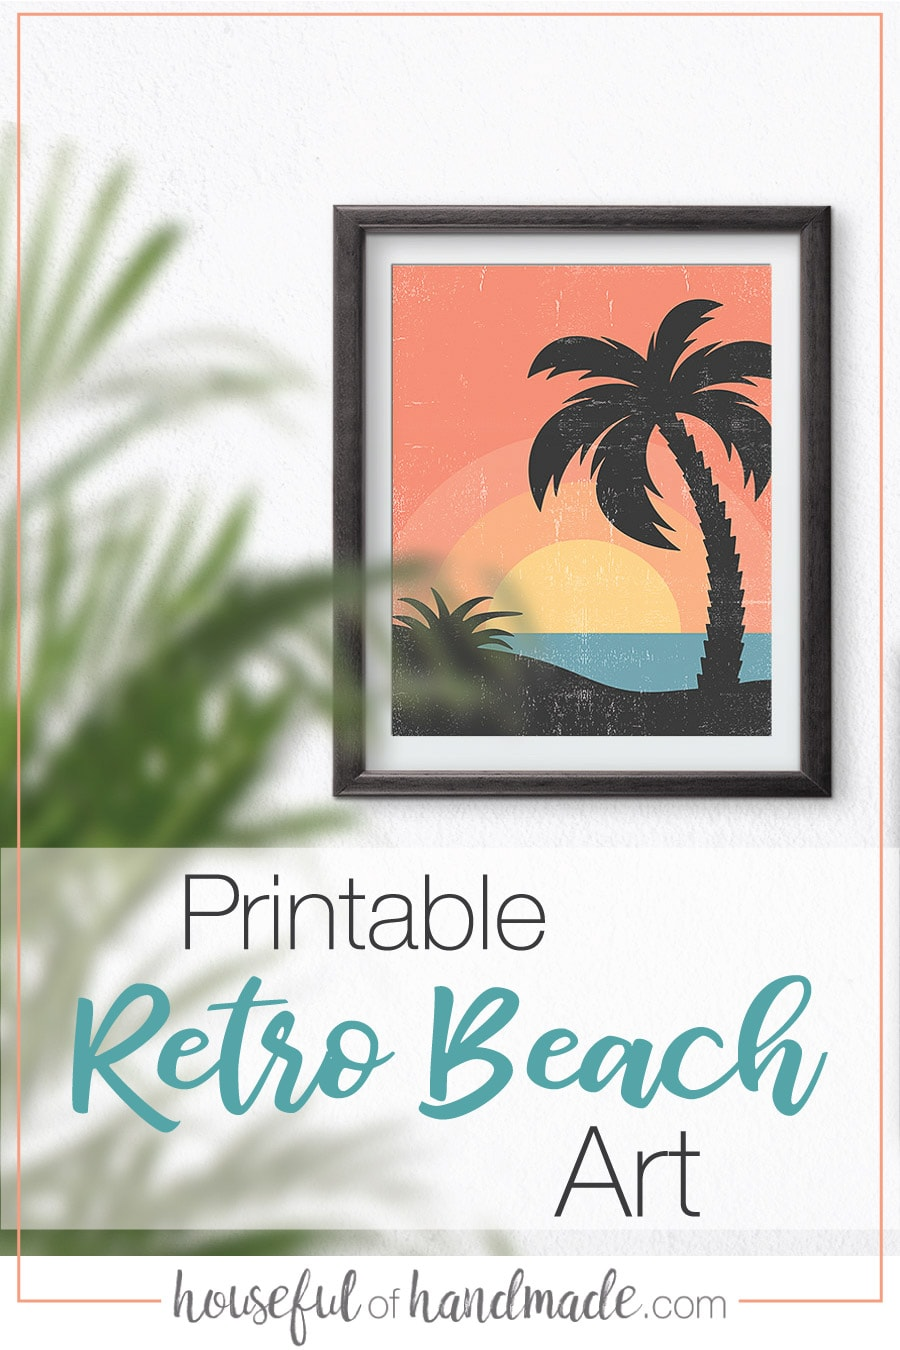 Printable retro beach art with palm trees looking over an ocean sunset.